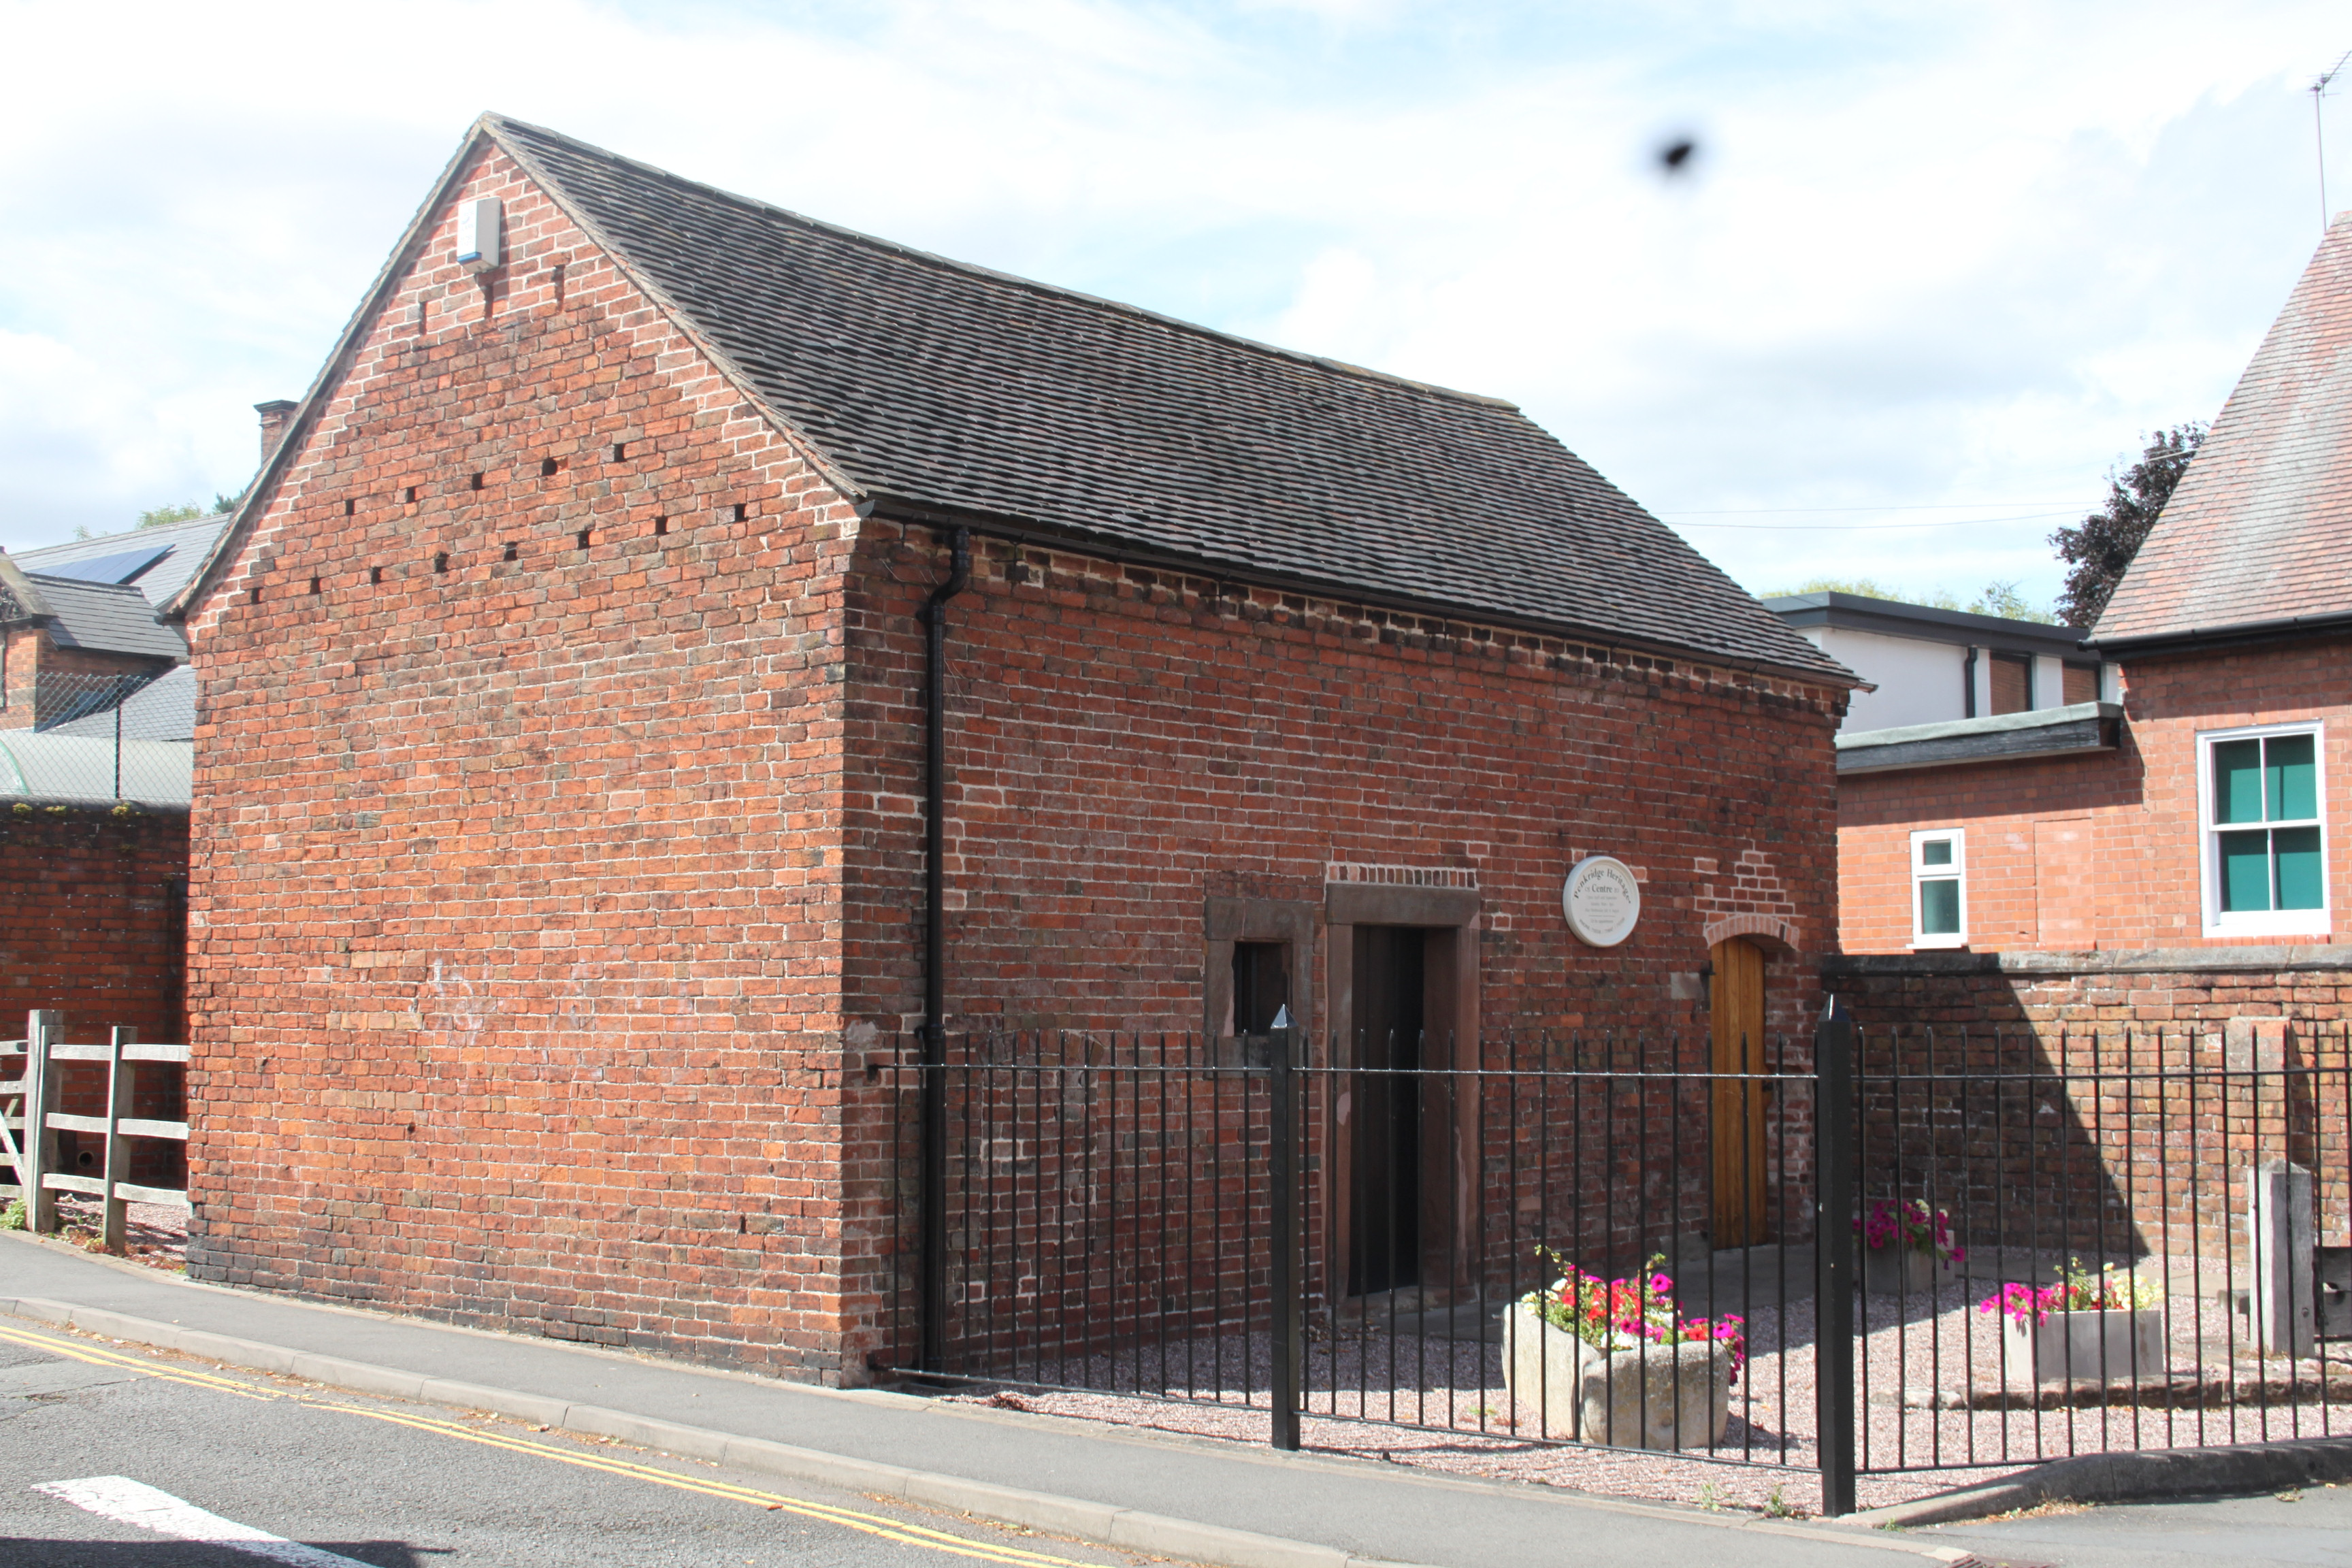 Penkridge Gaol, now Heritage Centre, entrance. The old village stocks can be seen in the right-hand corner.